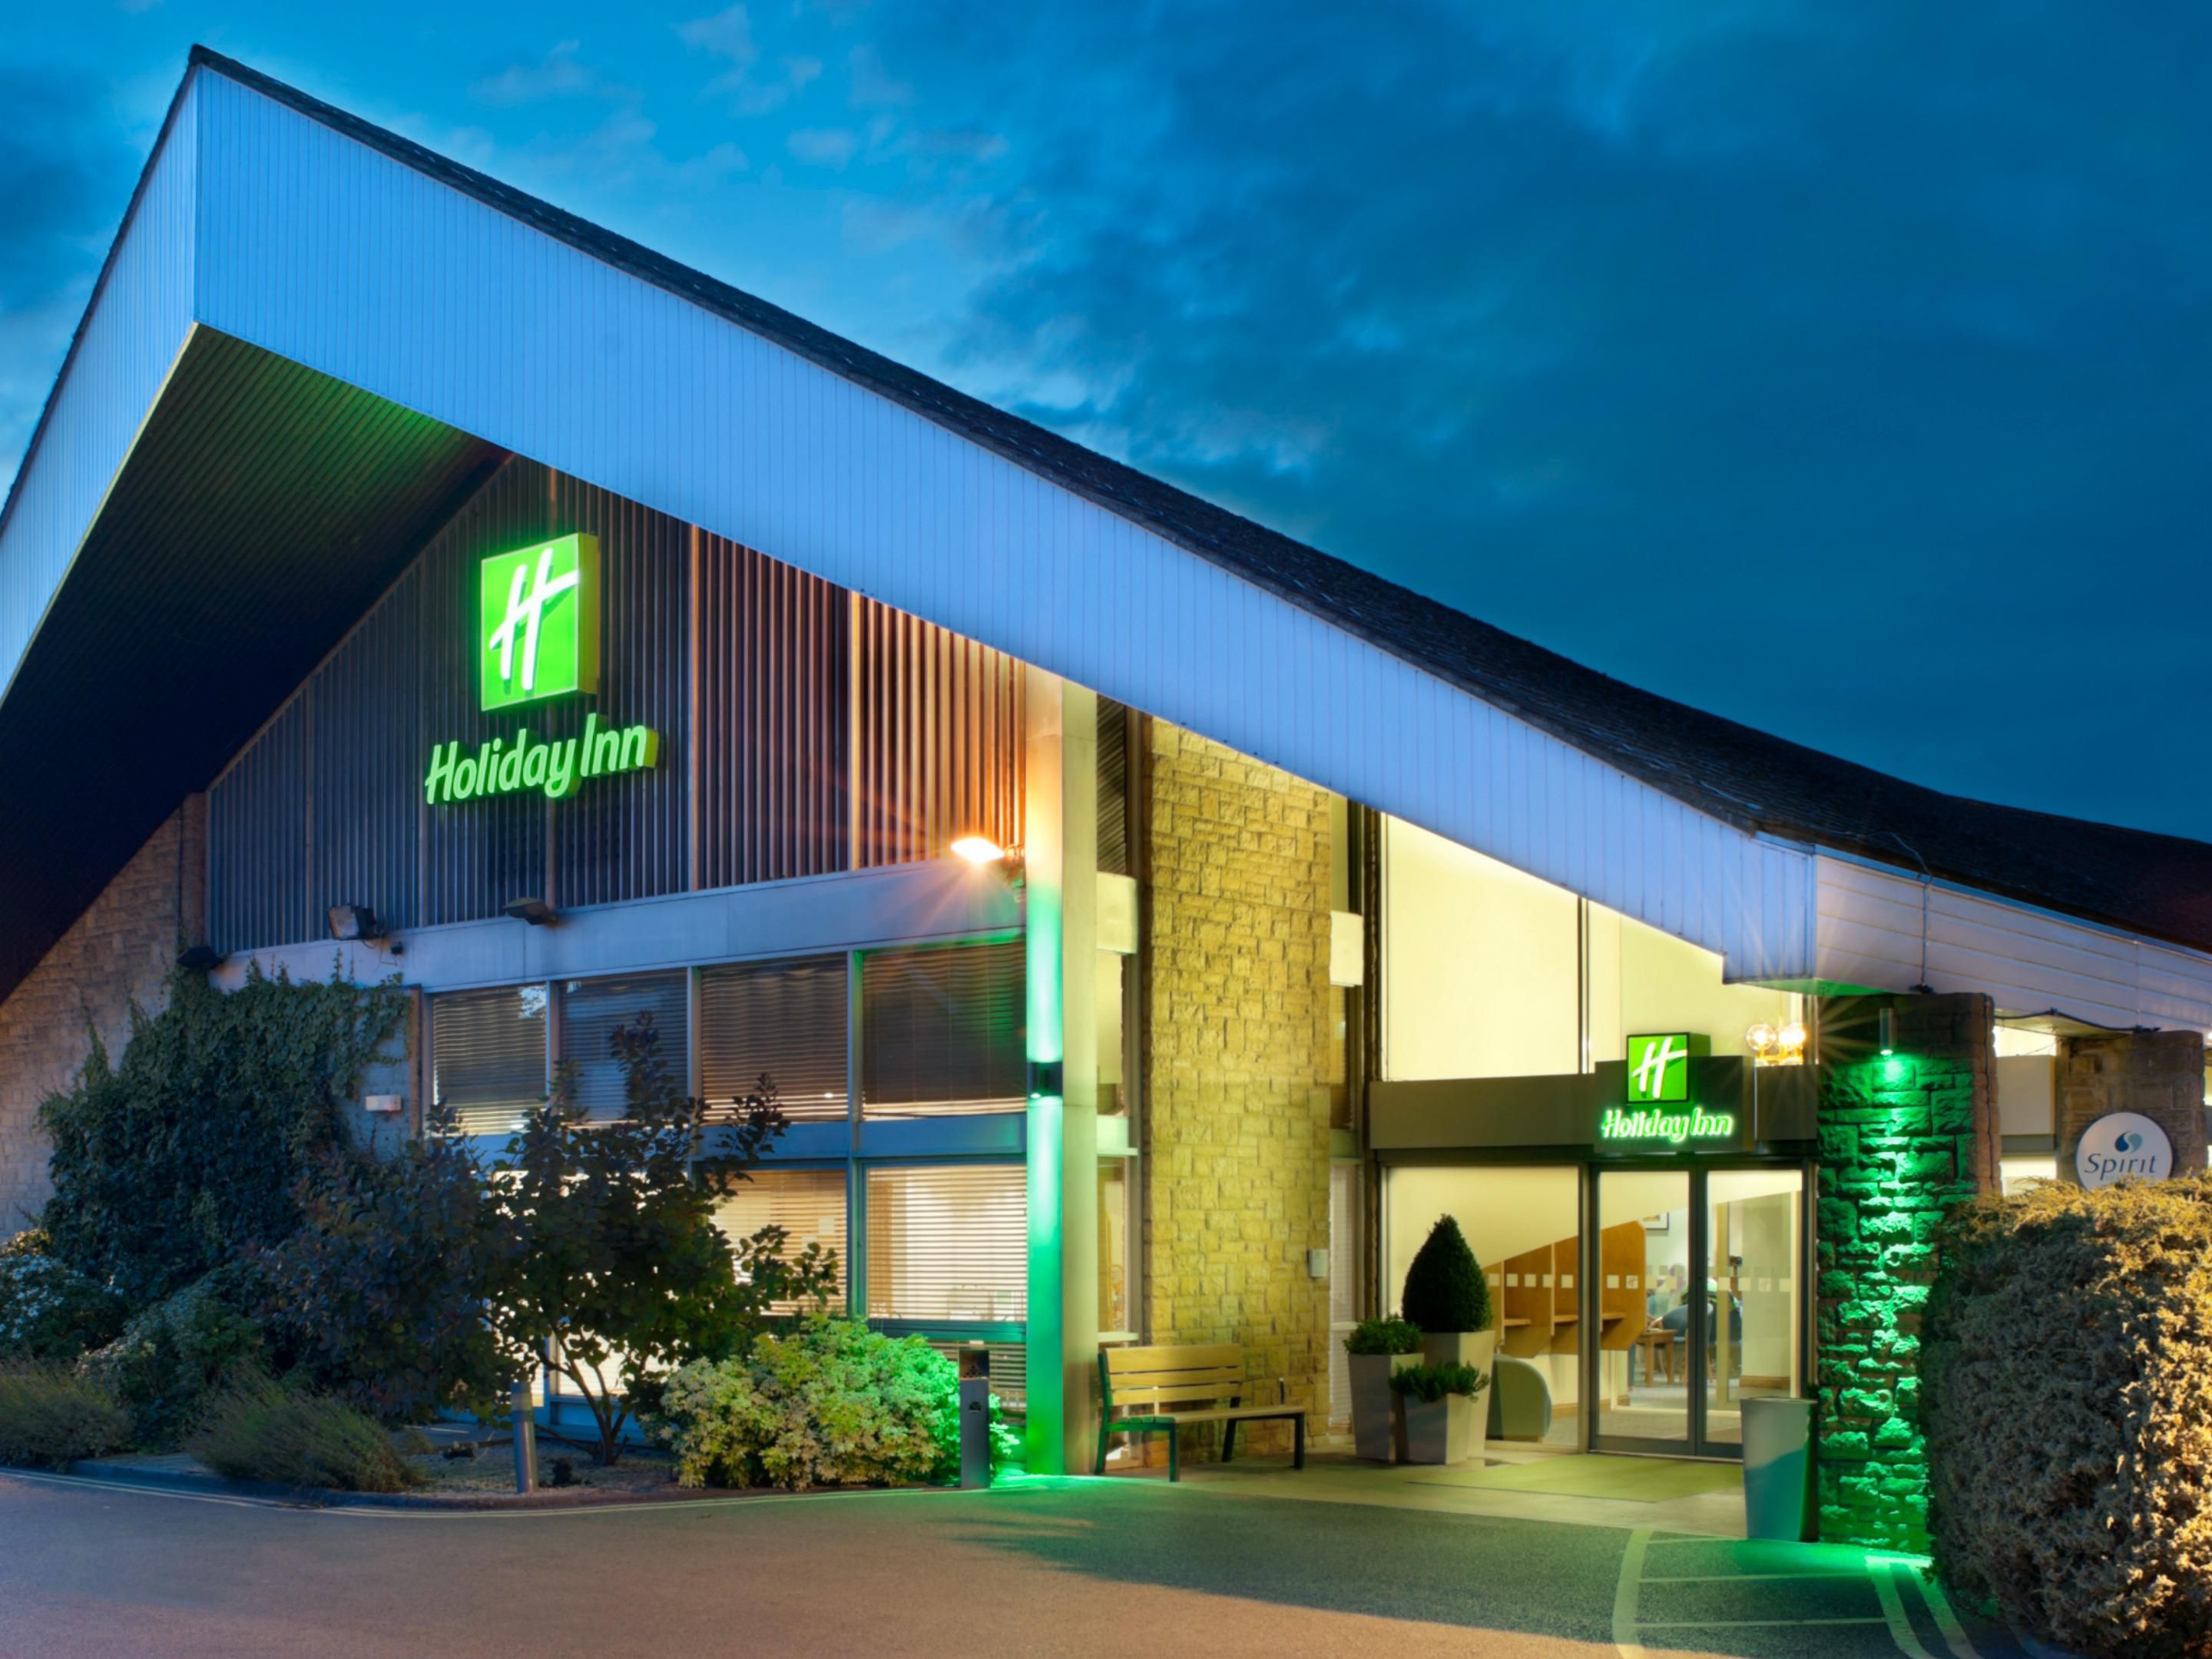 Welcome to the Holiday Inn Swindon